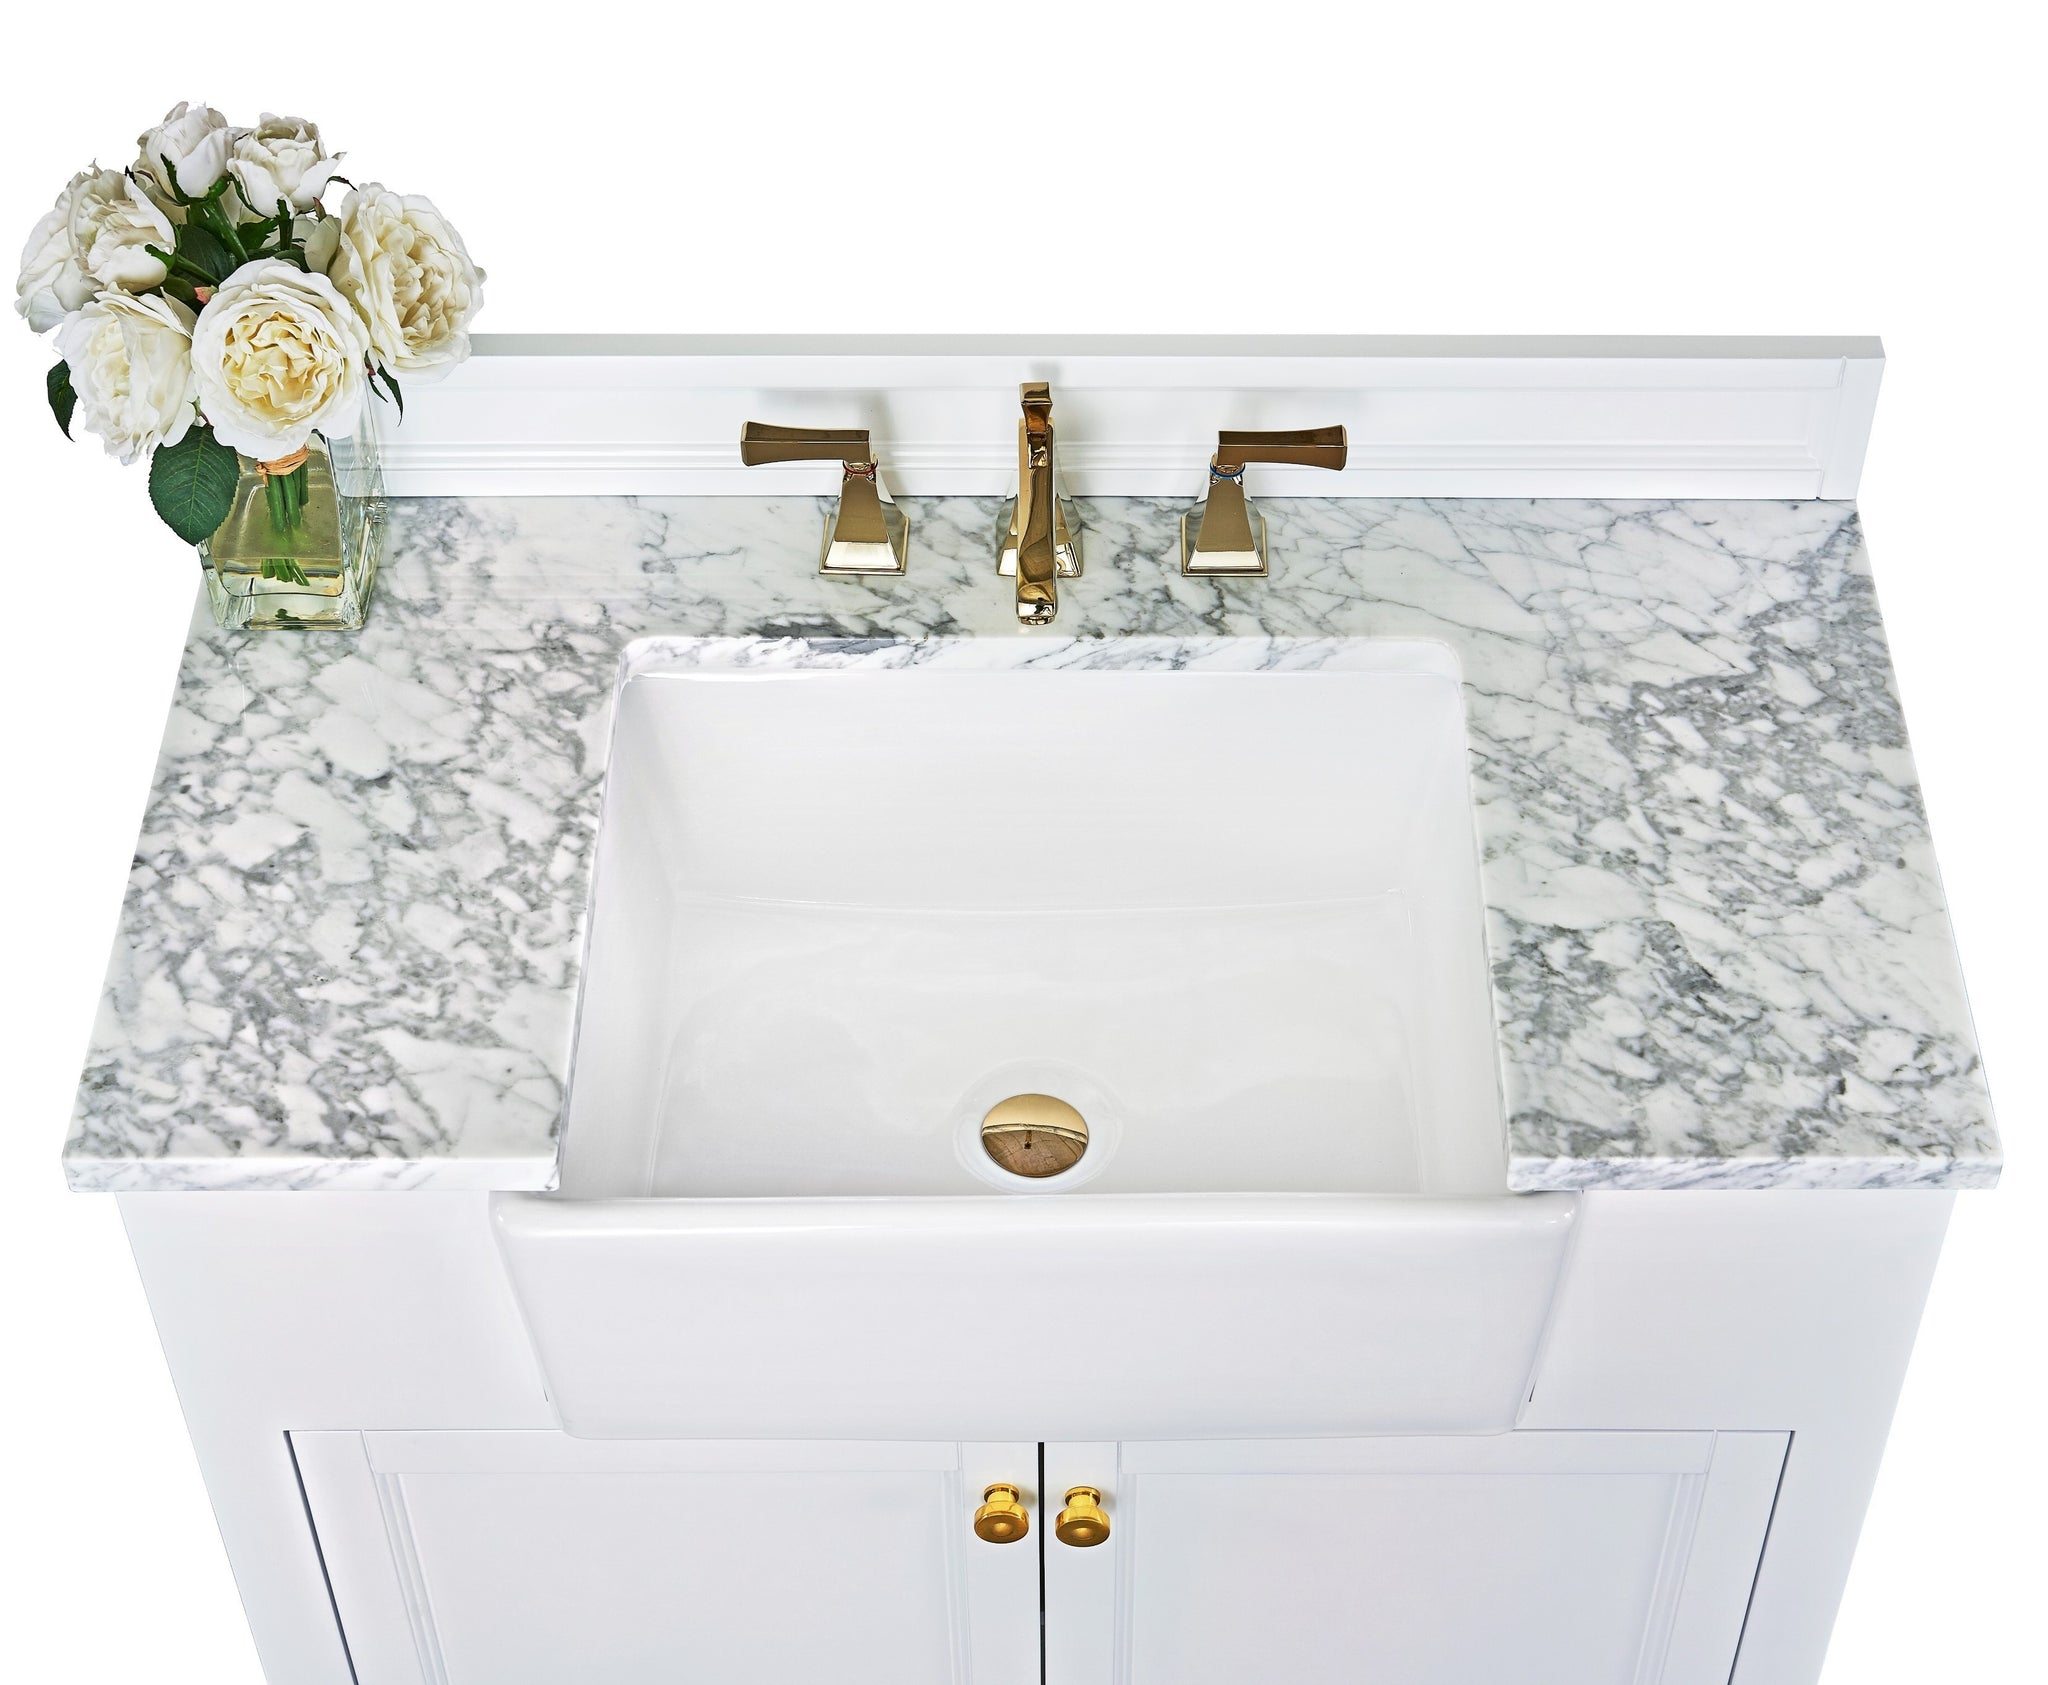 Adeline 36 in. Bath Vanity Set in White